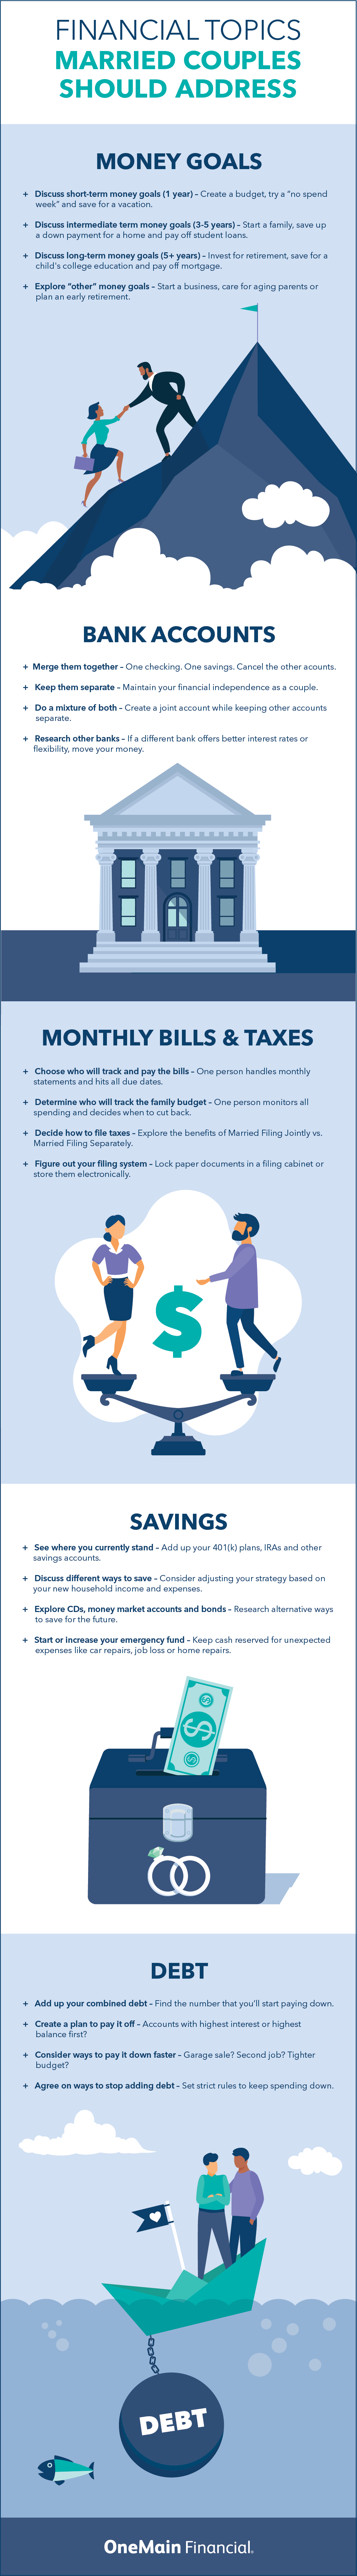 Infographic by OneMain Financial about financial topics married couples should discuss such as money goals, bank accounts, bills, taxes, savings and debt.